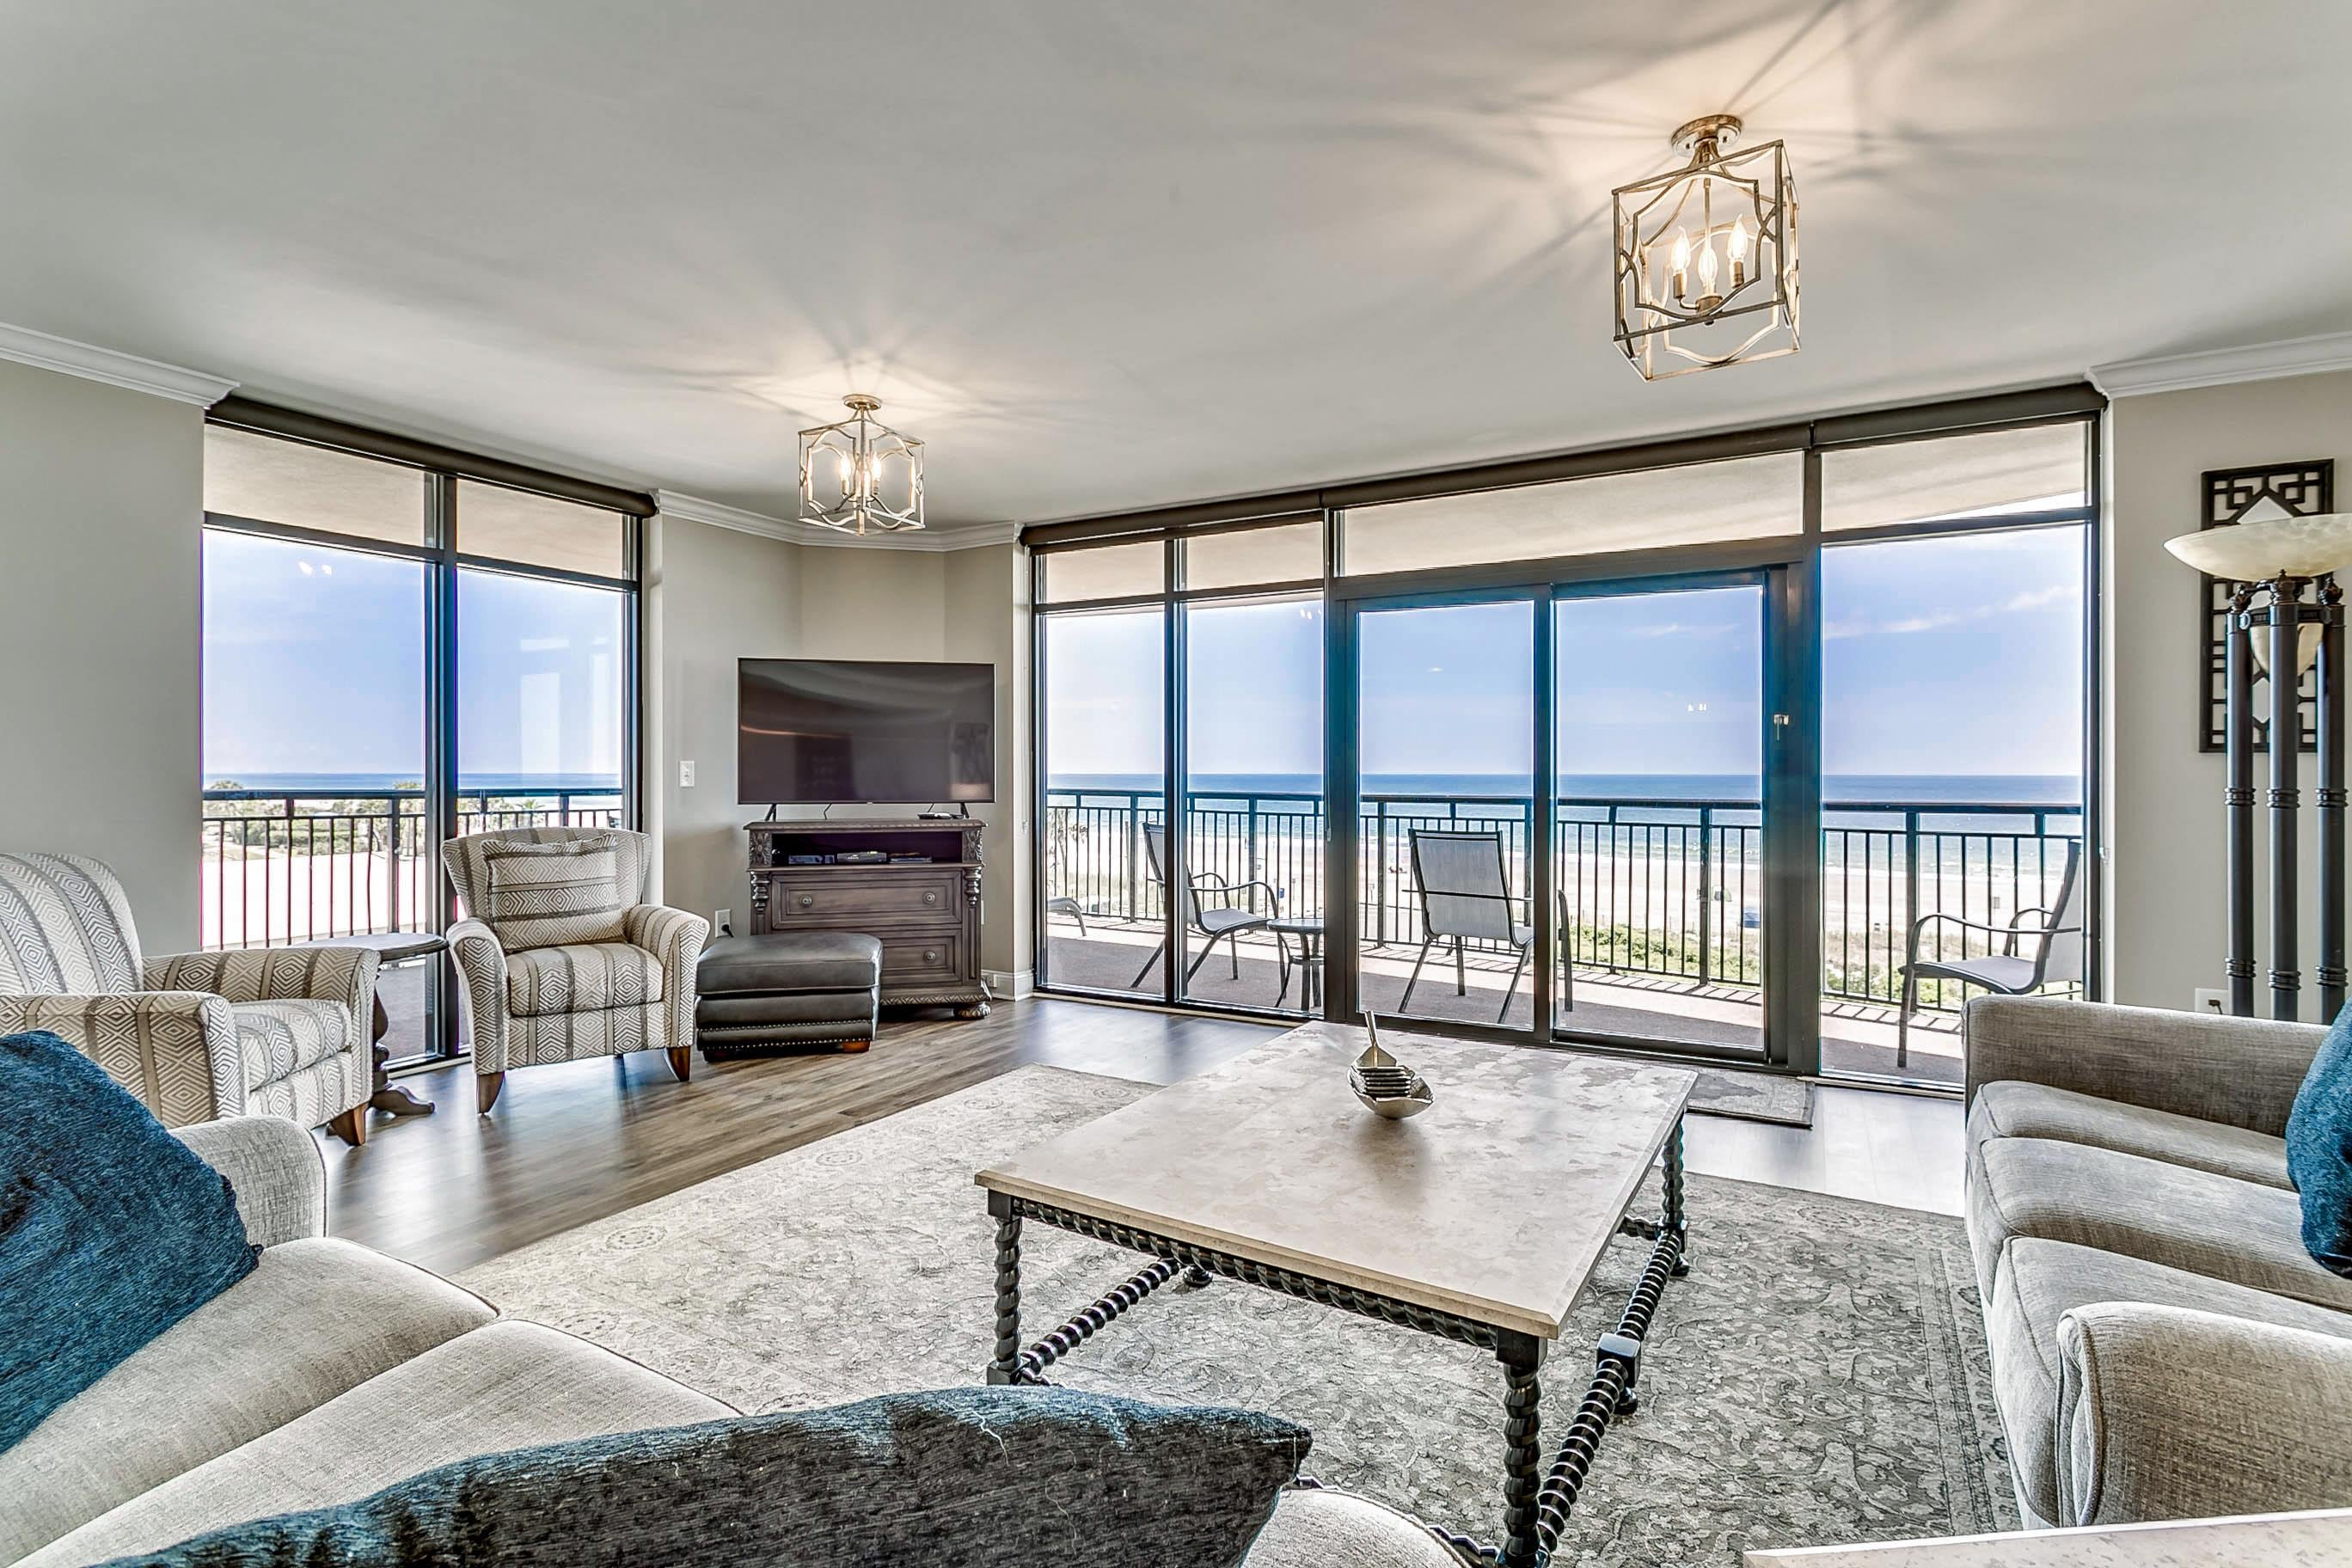 Property Image 1 - Stunning Oceanfront Condo with Huge Wraparound Balcony